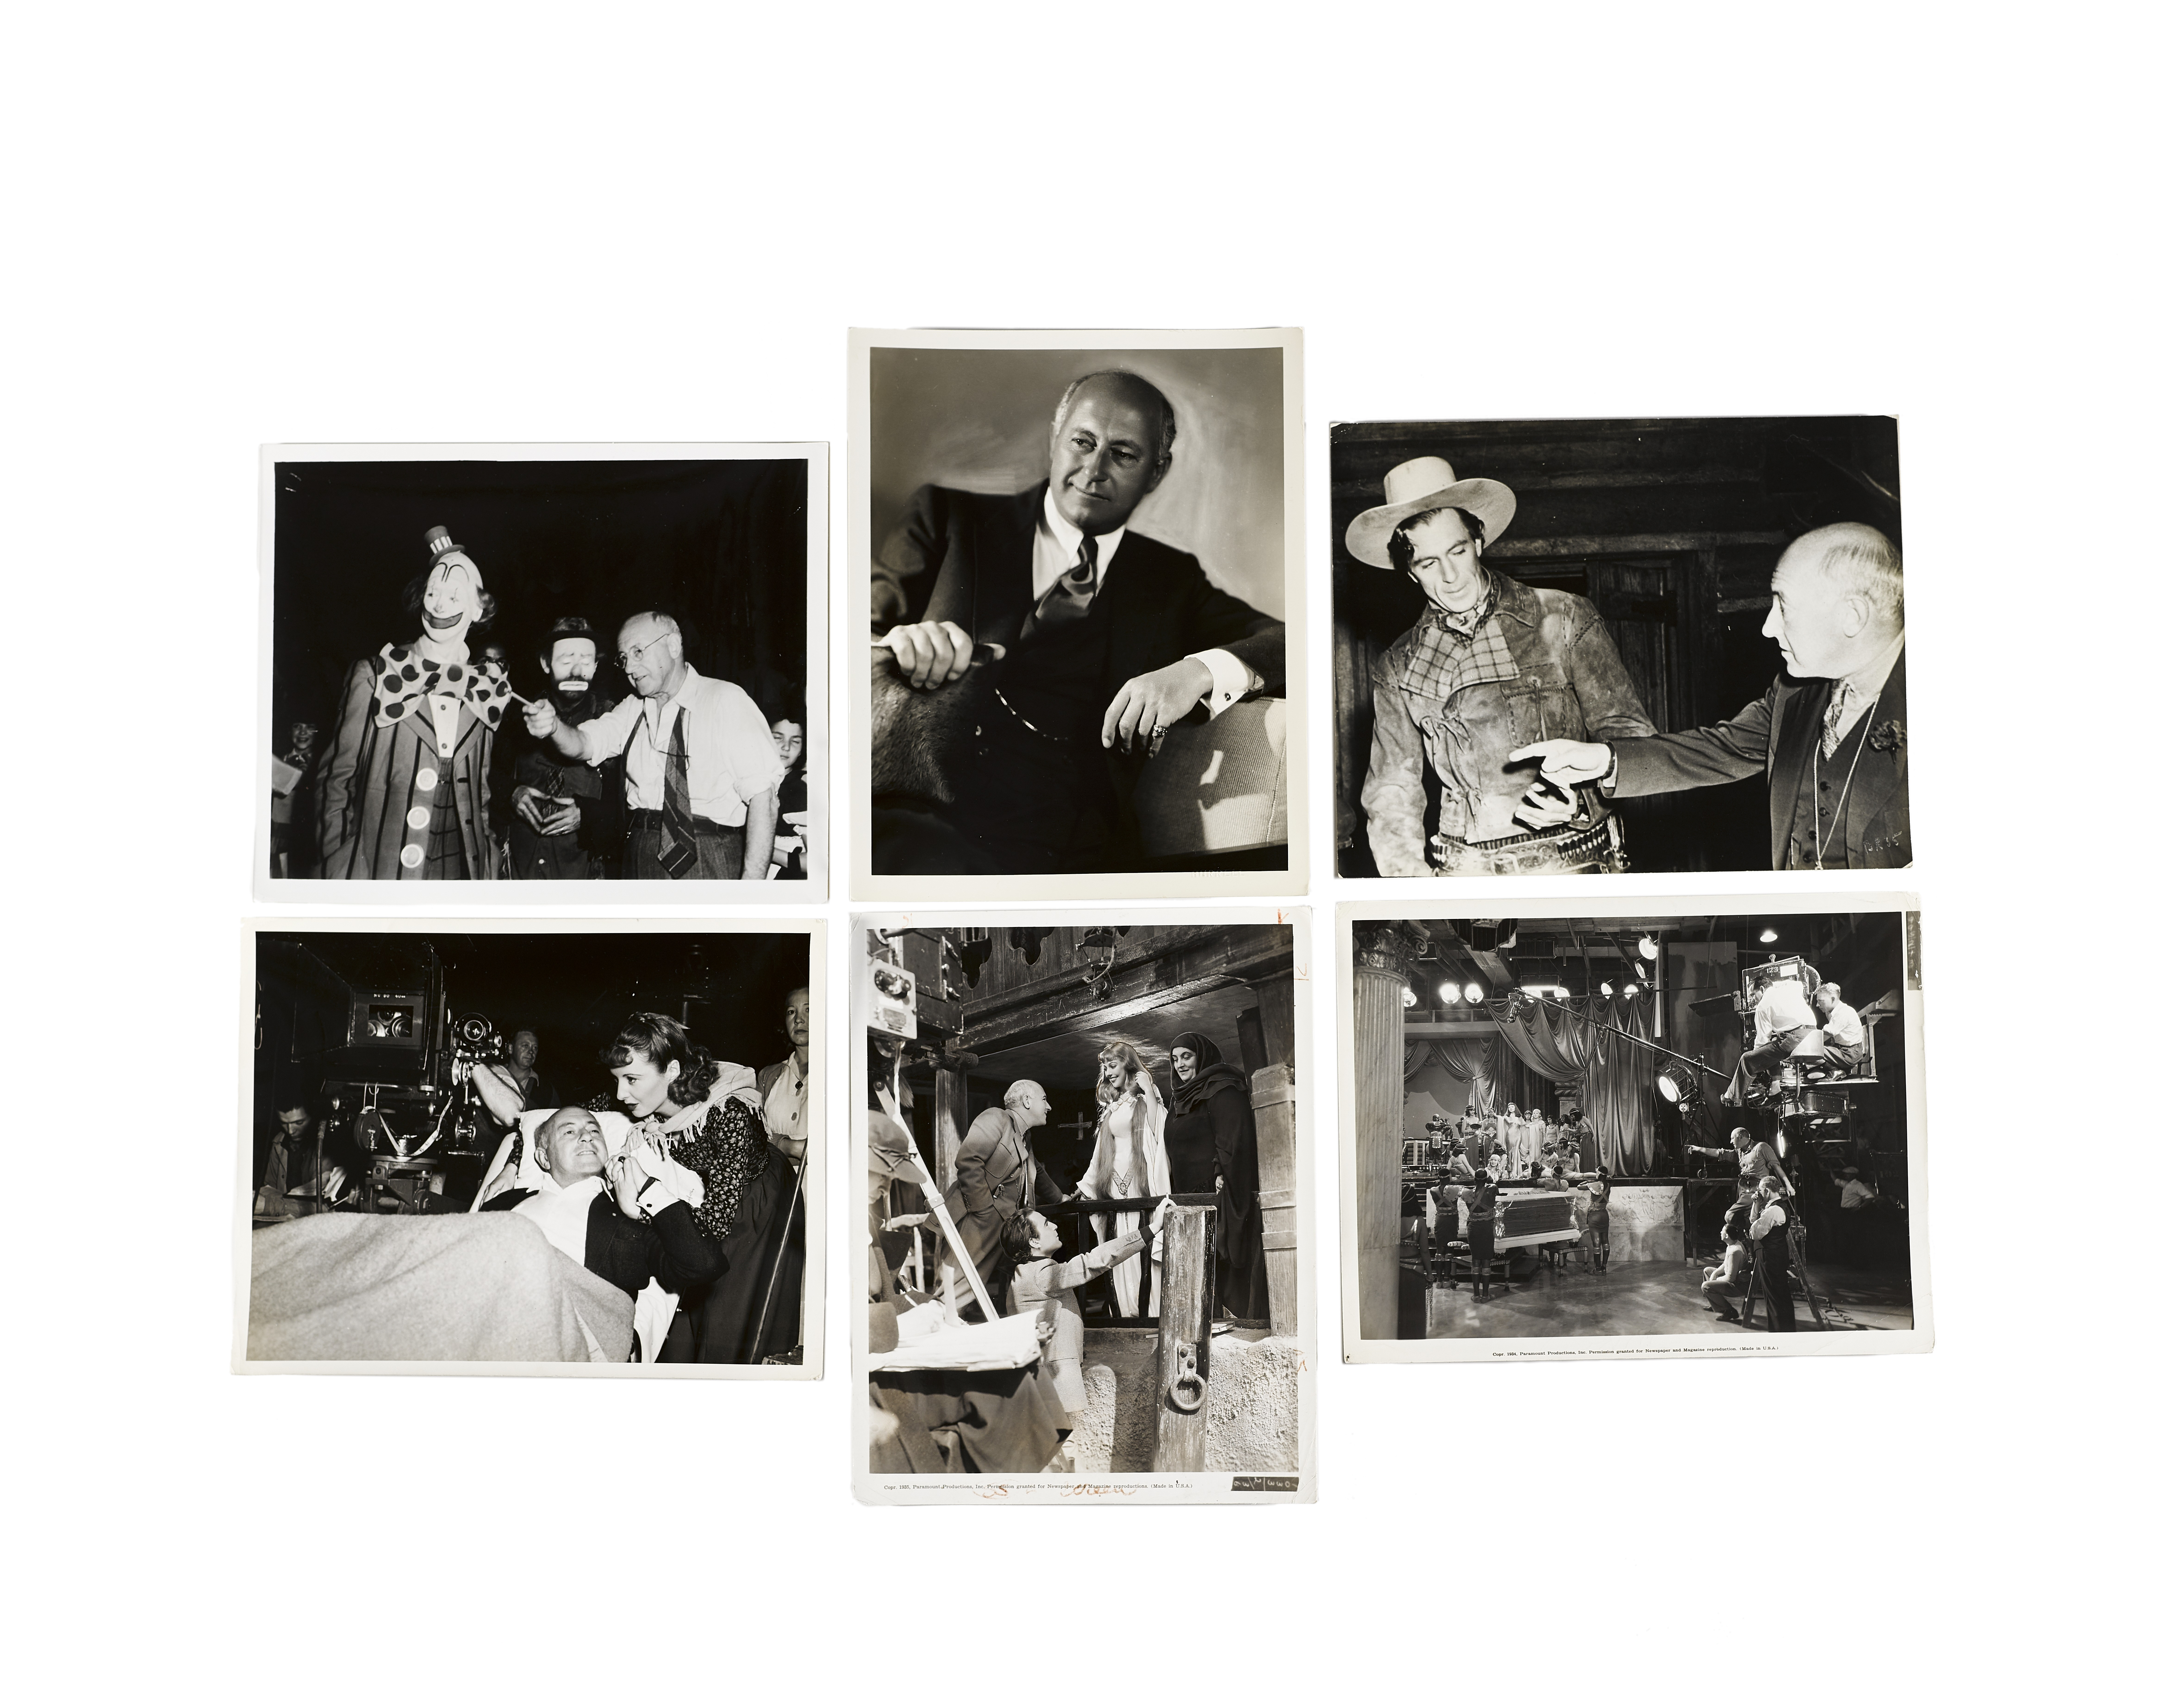 A Cecil B. DeMille archive of photographs